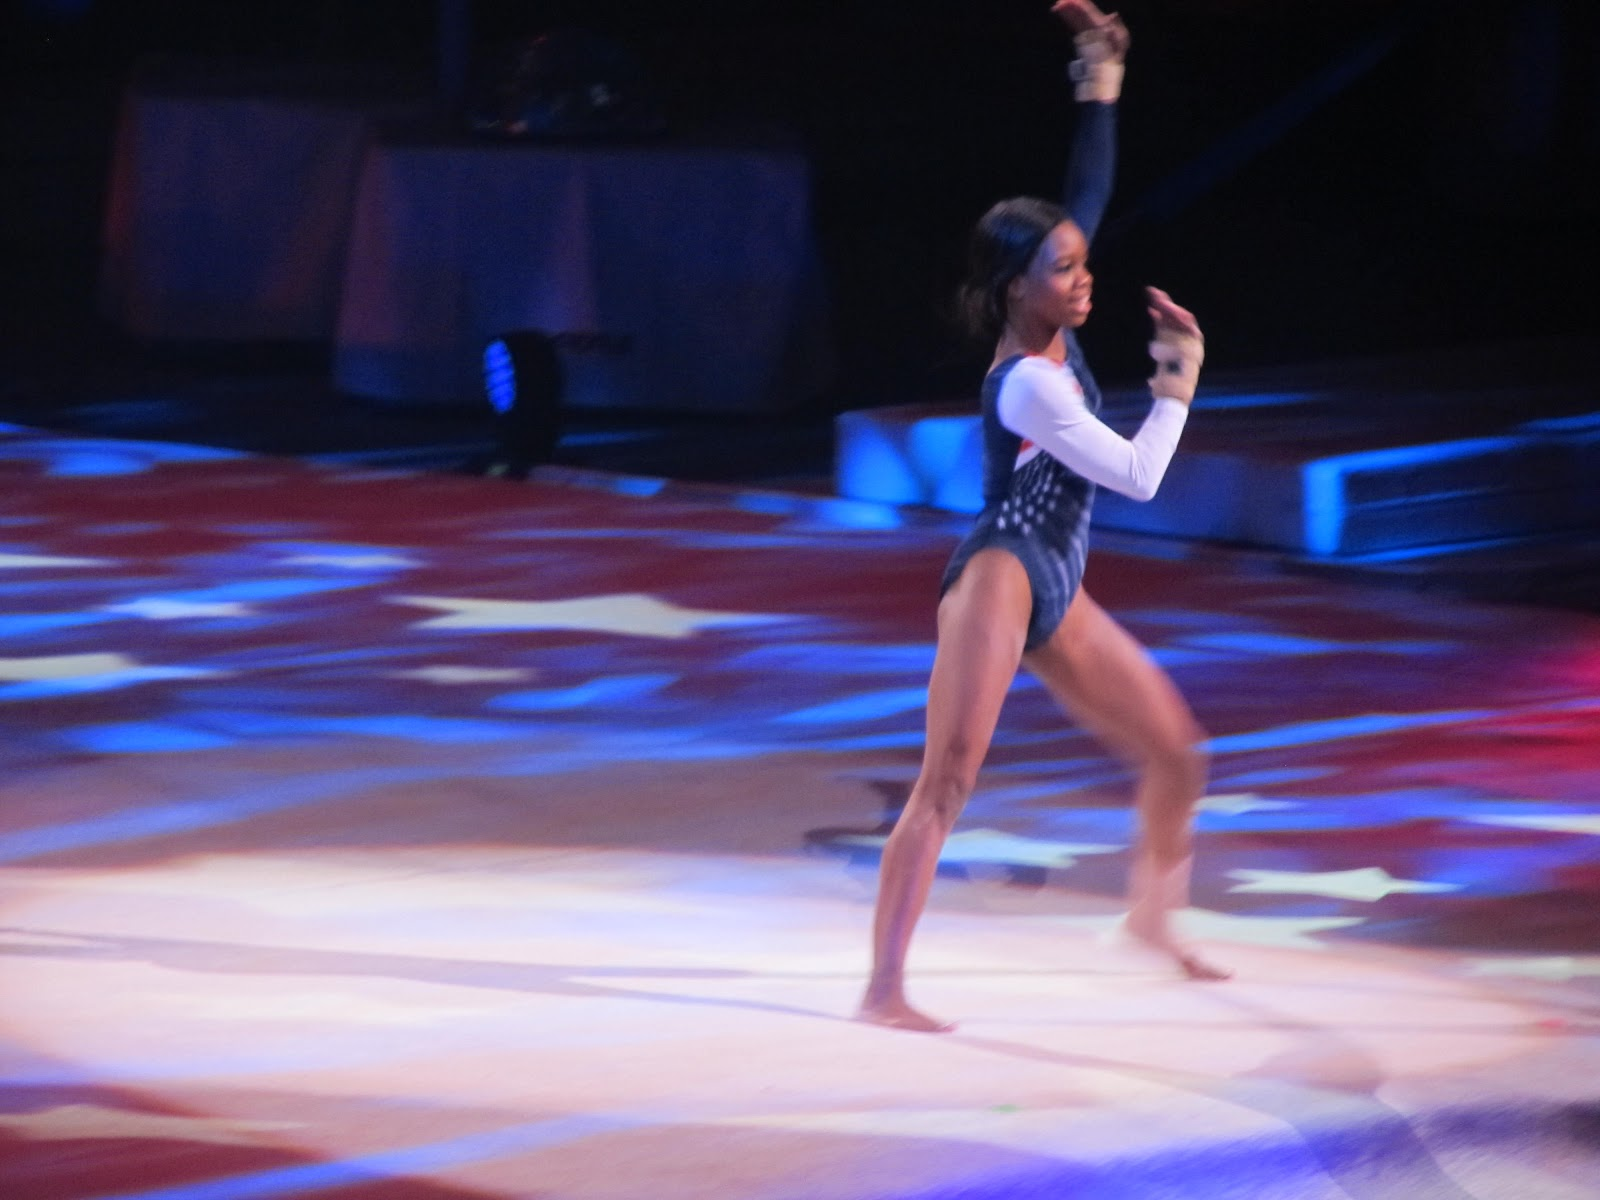 gabby douglas floor routine - photo #17